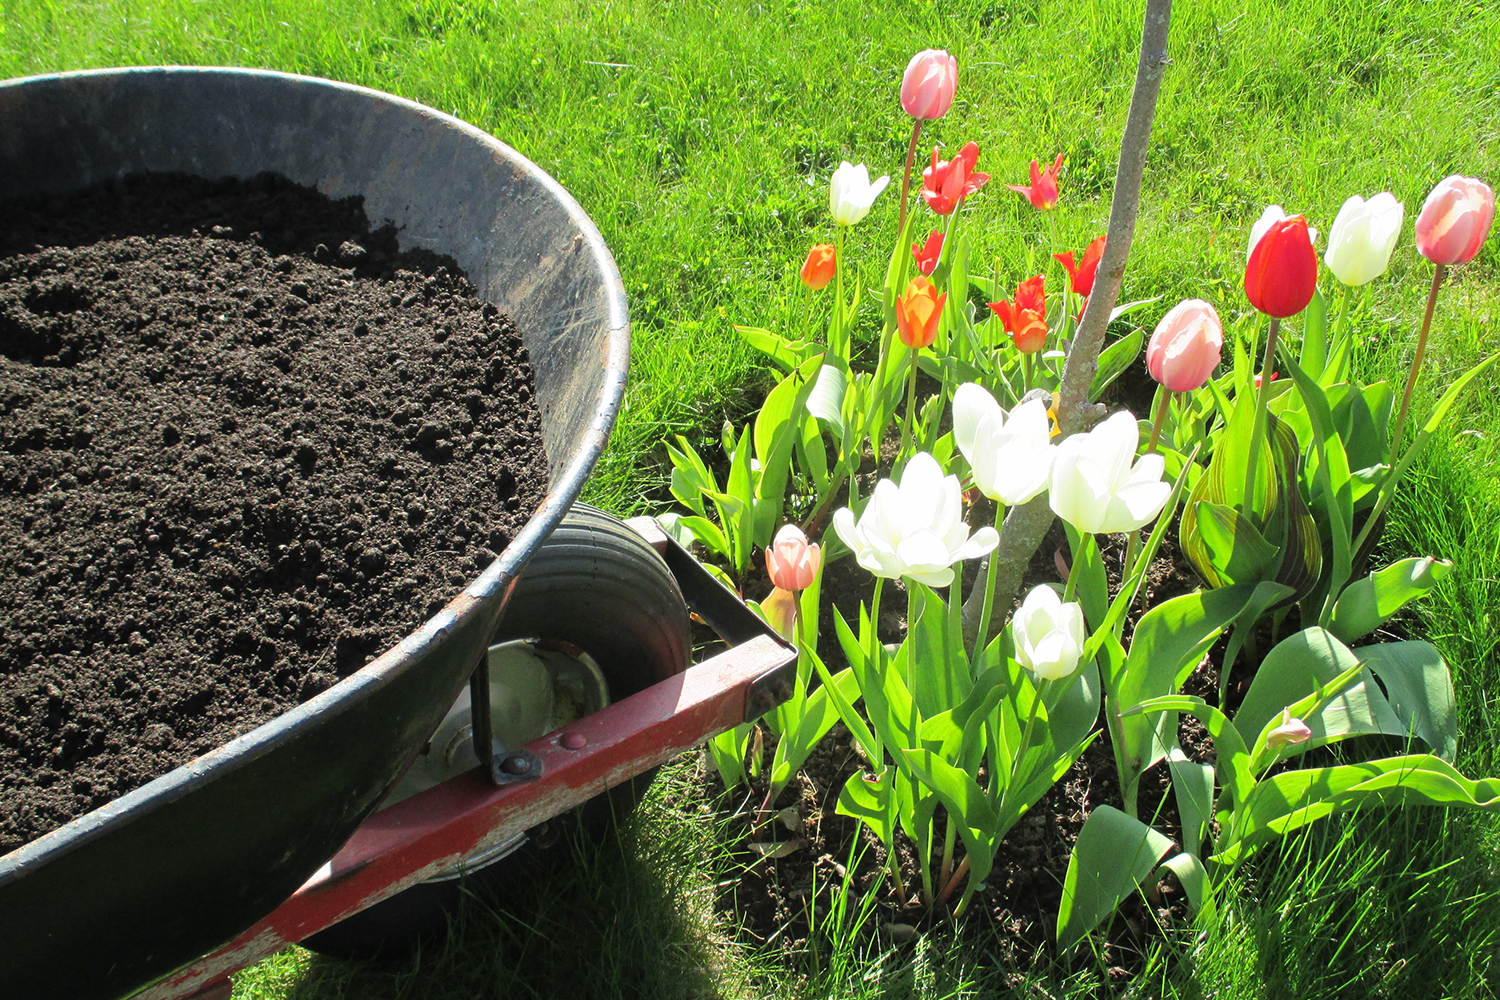 wheelbarrow and a freshly planted garden bed full of various flowers including tulips.